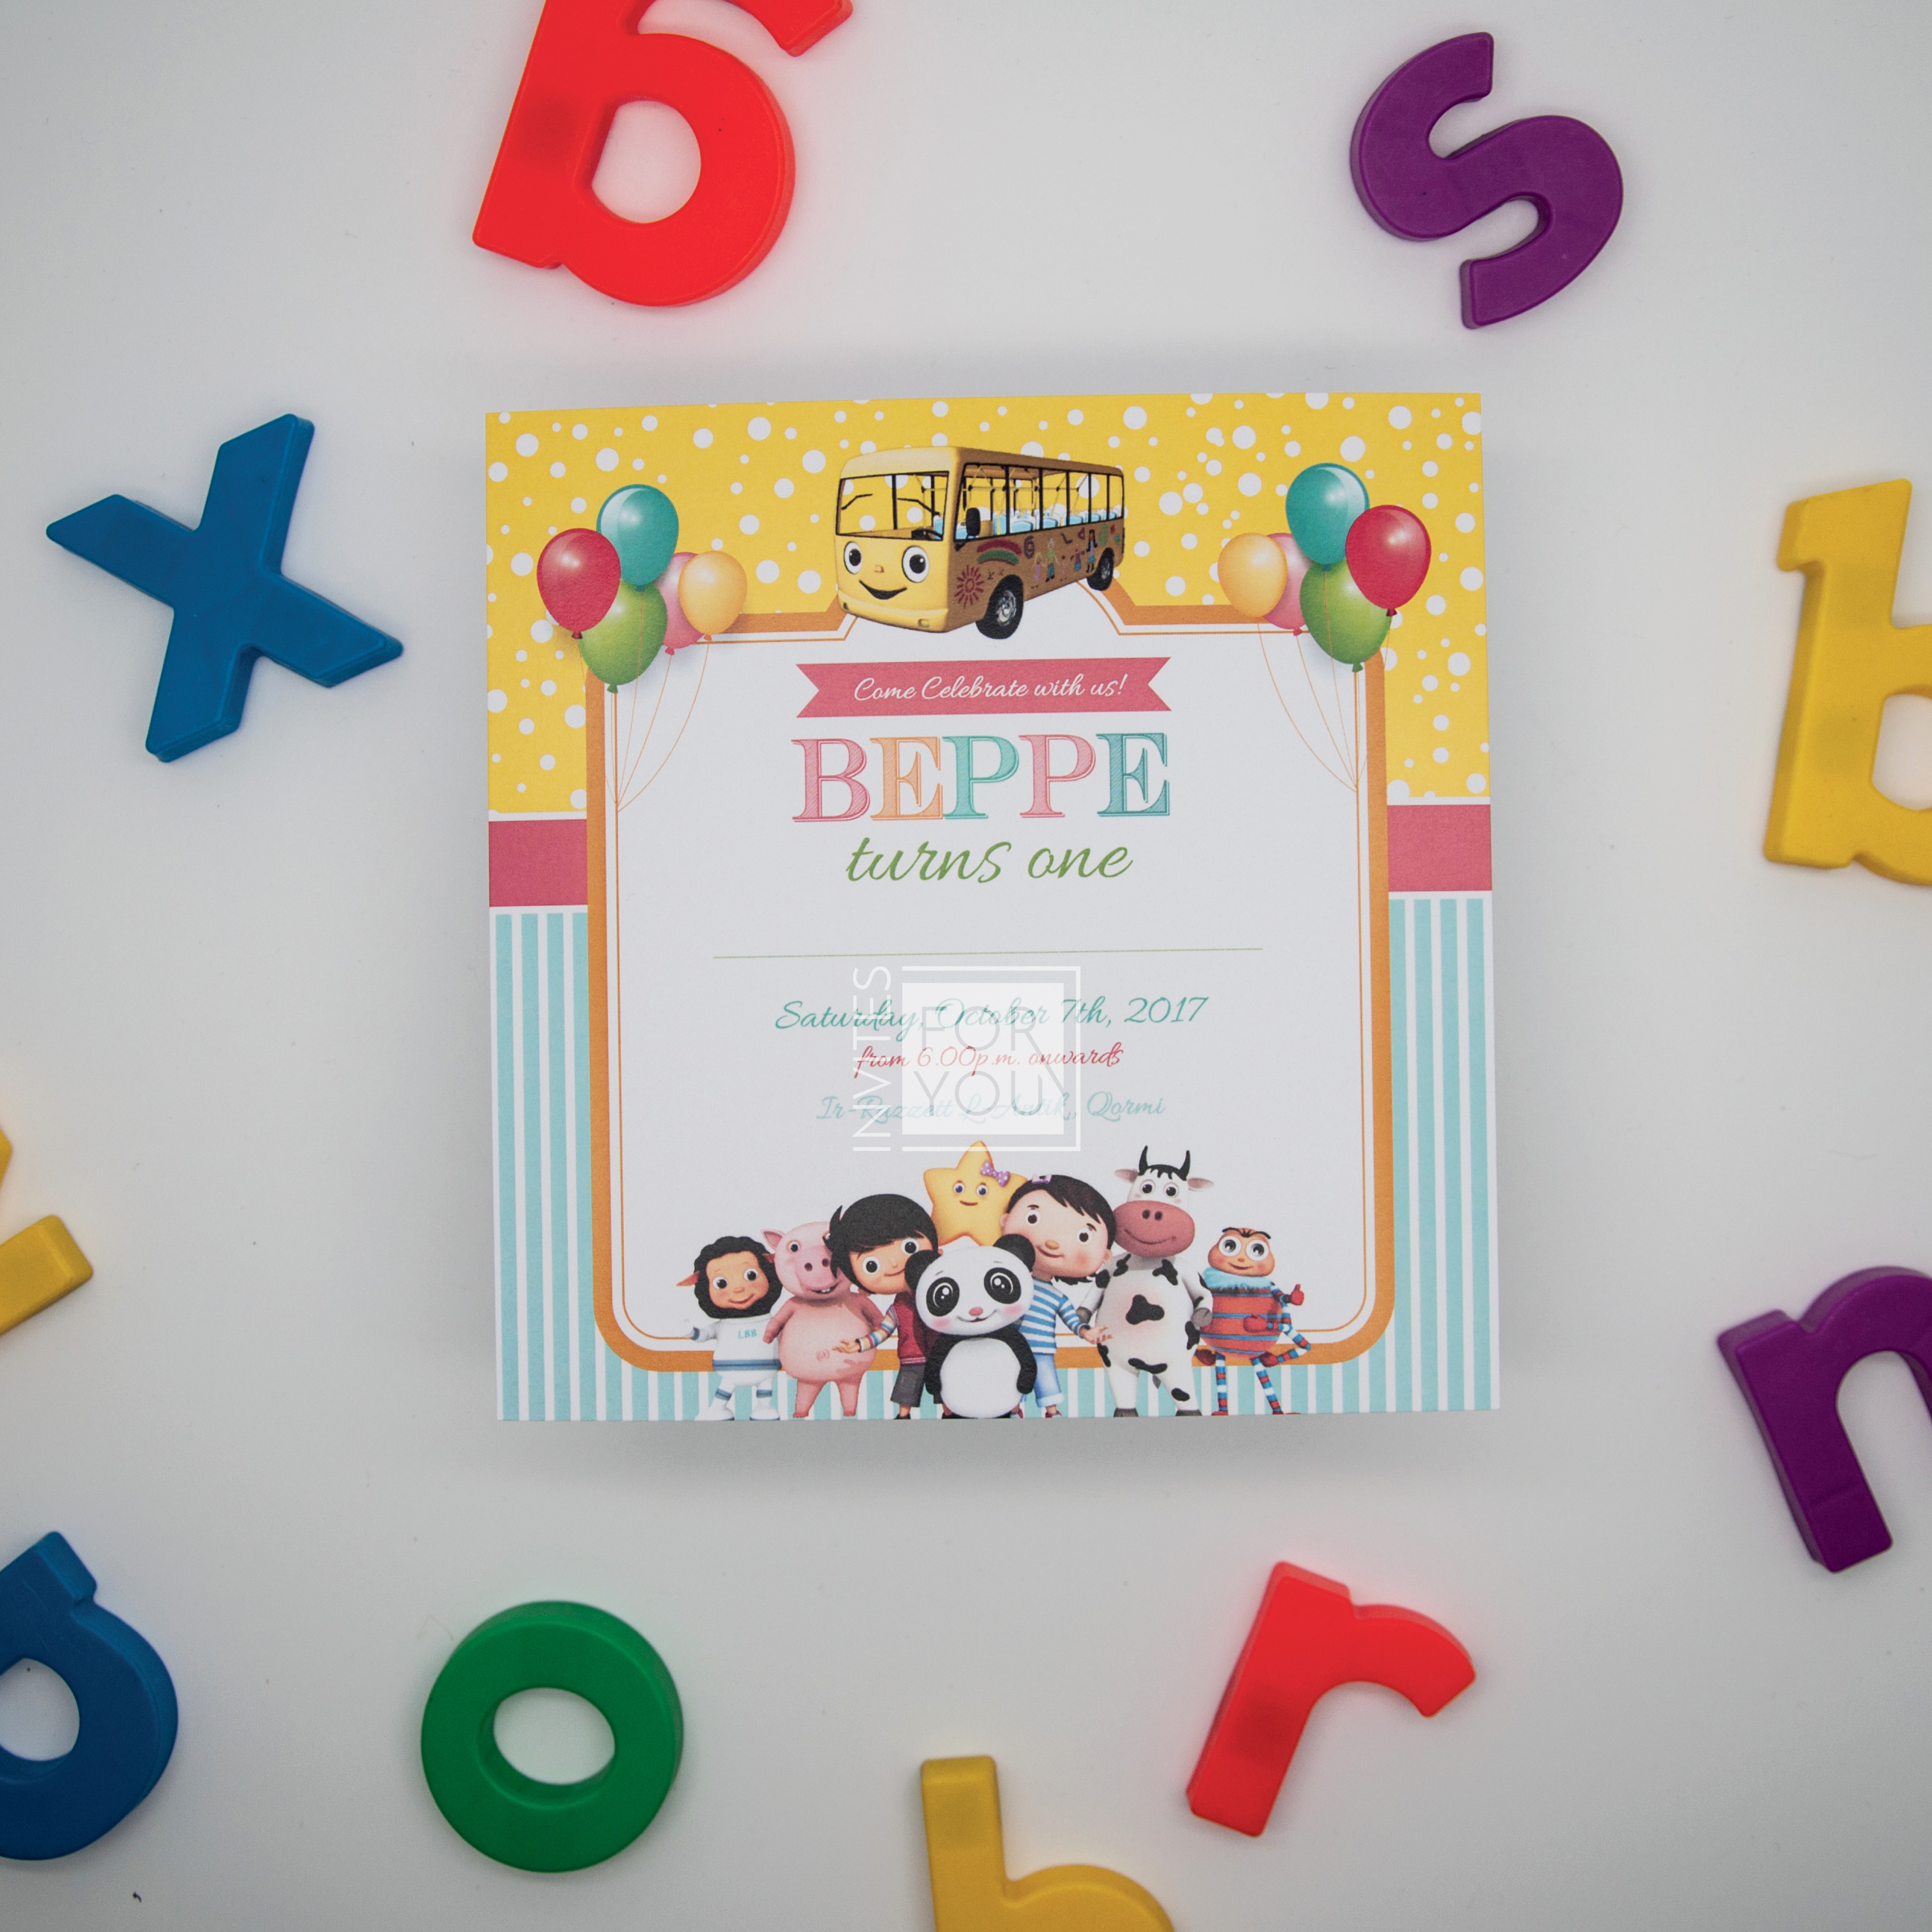 Kids Party Invitation